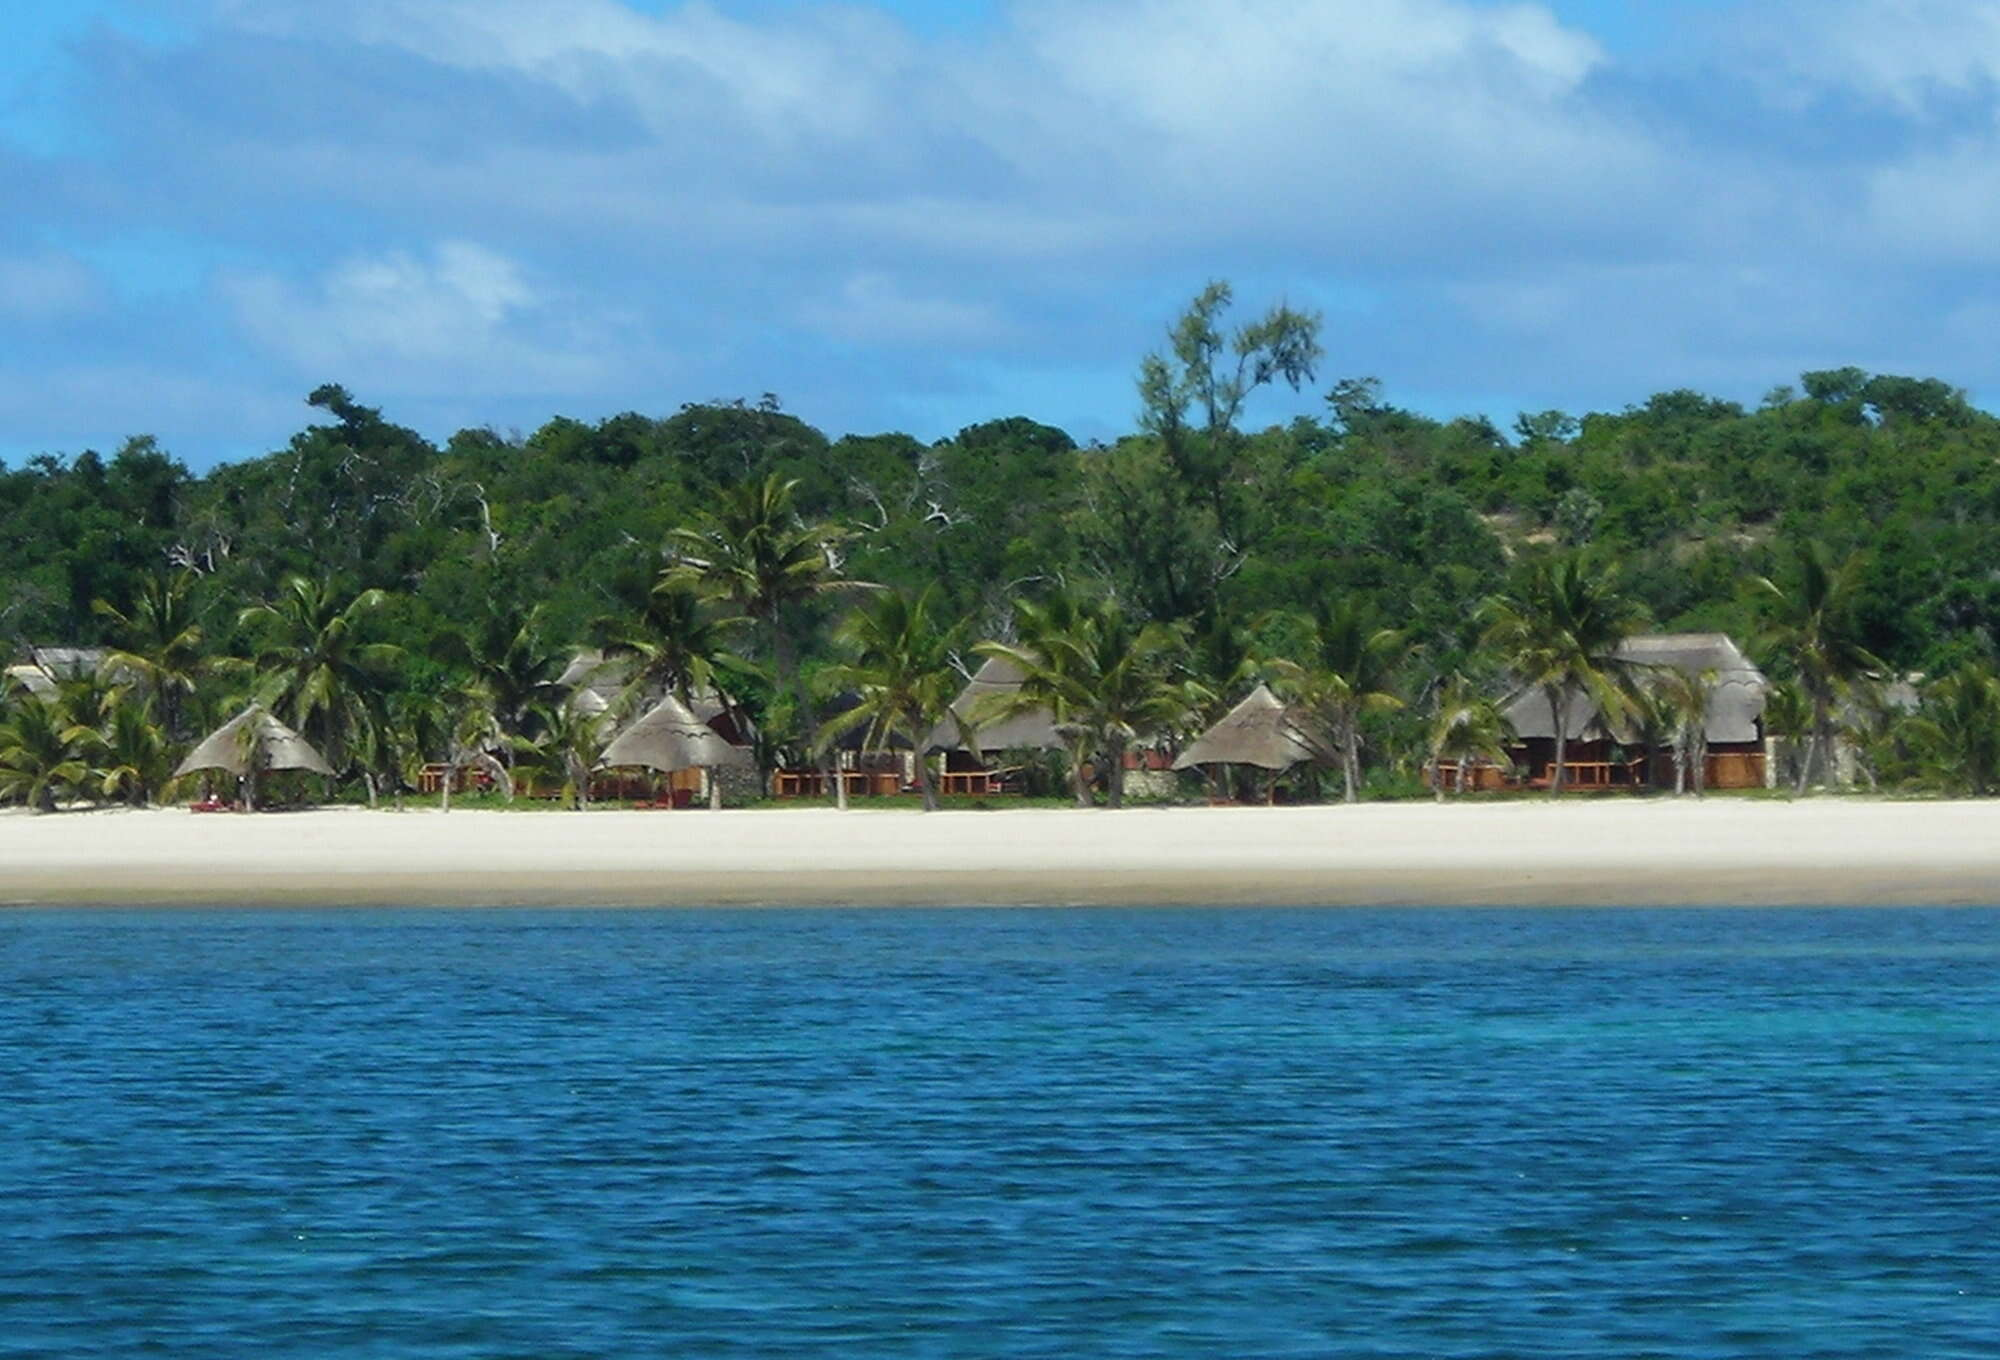 Beach holiday to Benguerra Lodge, on Benguerra Island, in the Bazaruto Archipelago of Mozambique